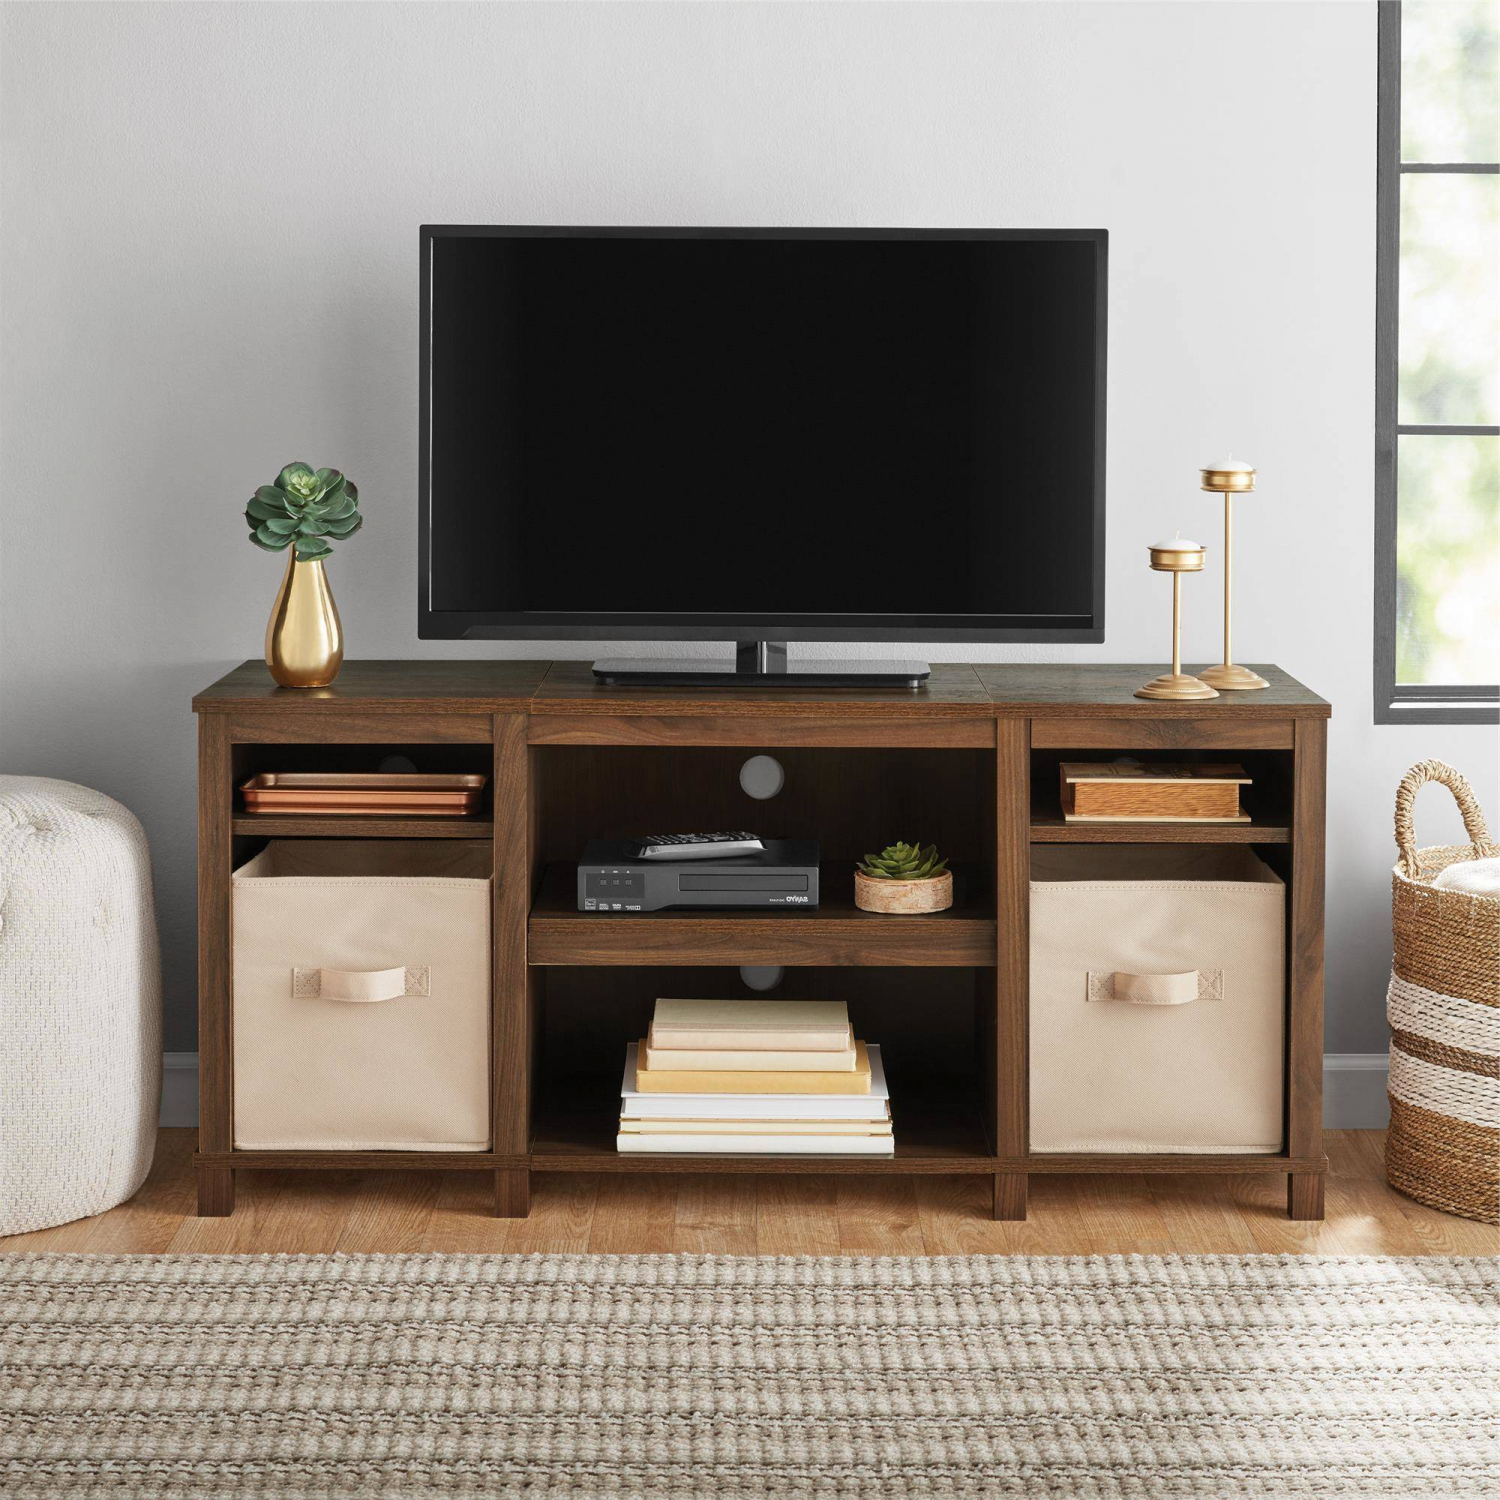 Current Blaire Solid Wood Tv Stands For Tvs Up To 75 Pertaining To 50 Inch Solid Wood Tv Stand Flat Screen Console Modern (View 6 of 20)